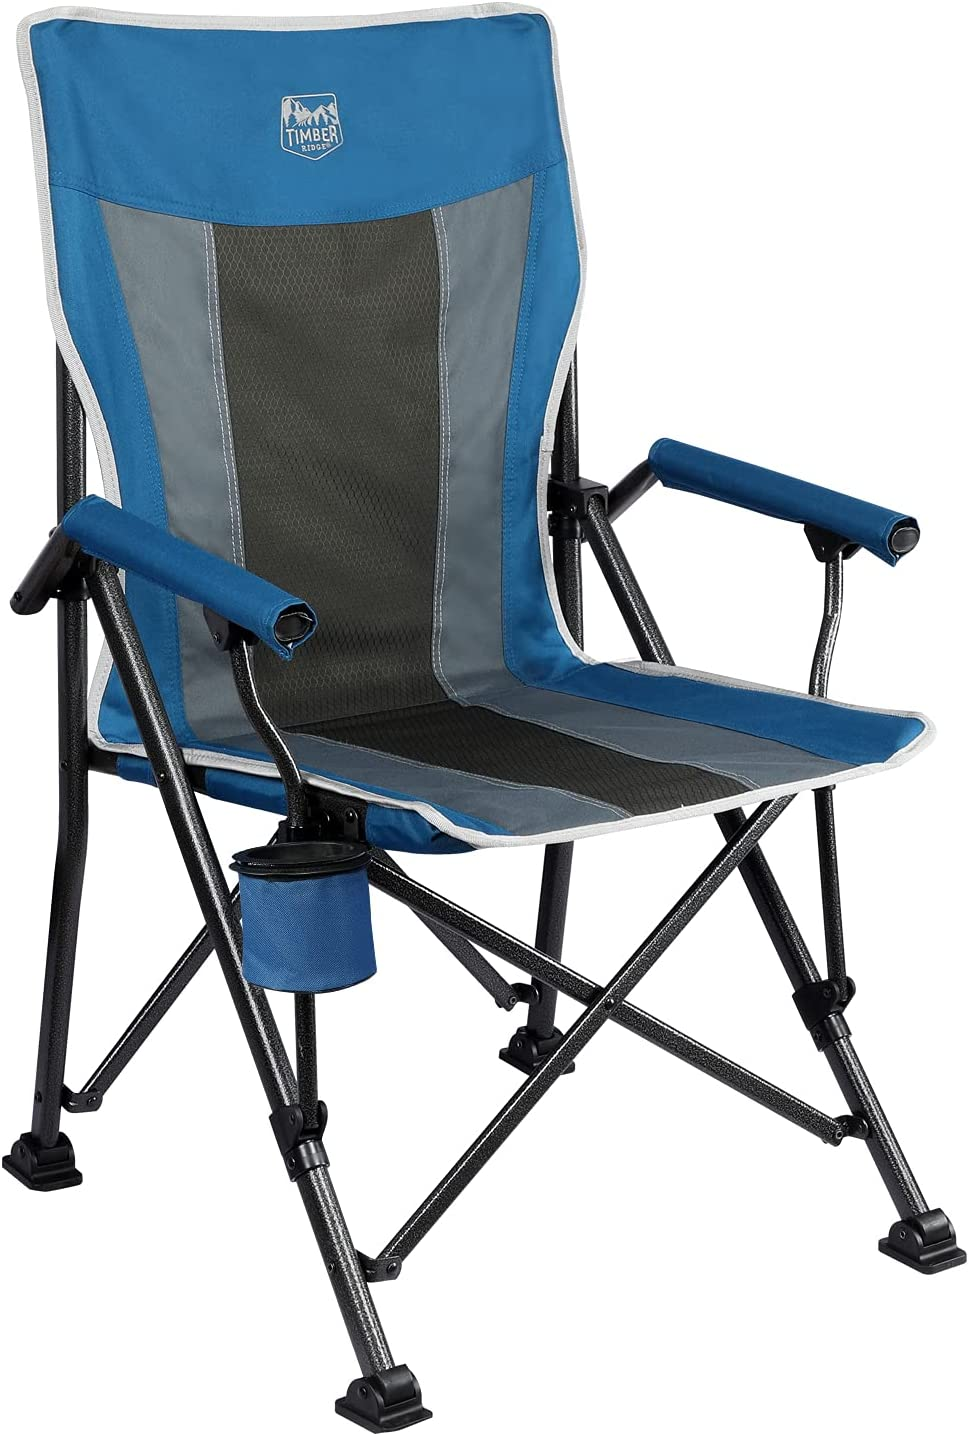 TIMBER RIDGE Ovesized Folding Camping Chair with Padded Hard Armrest, High Back Lawn Chair with Cup Holder, Portable Outdoor Chair Heavy Duty 400lb for Fishing, Hiking, Including Carry Bag (Blue)